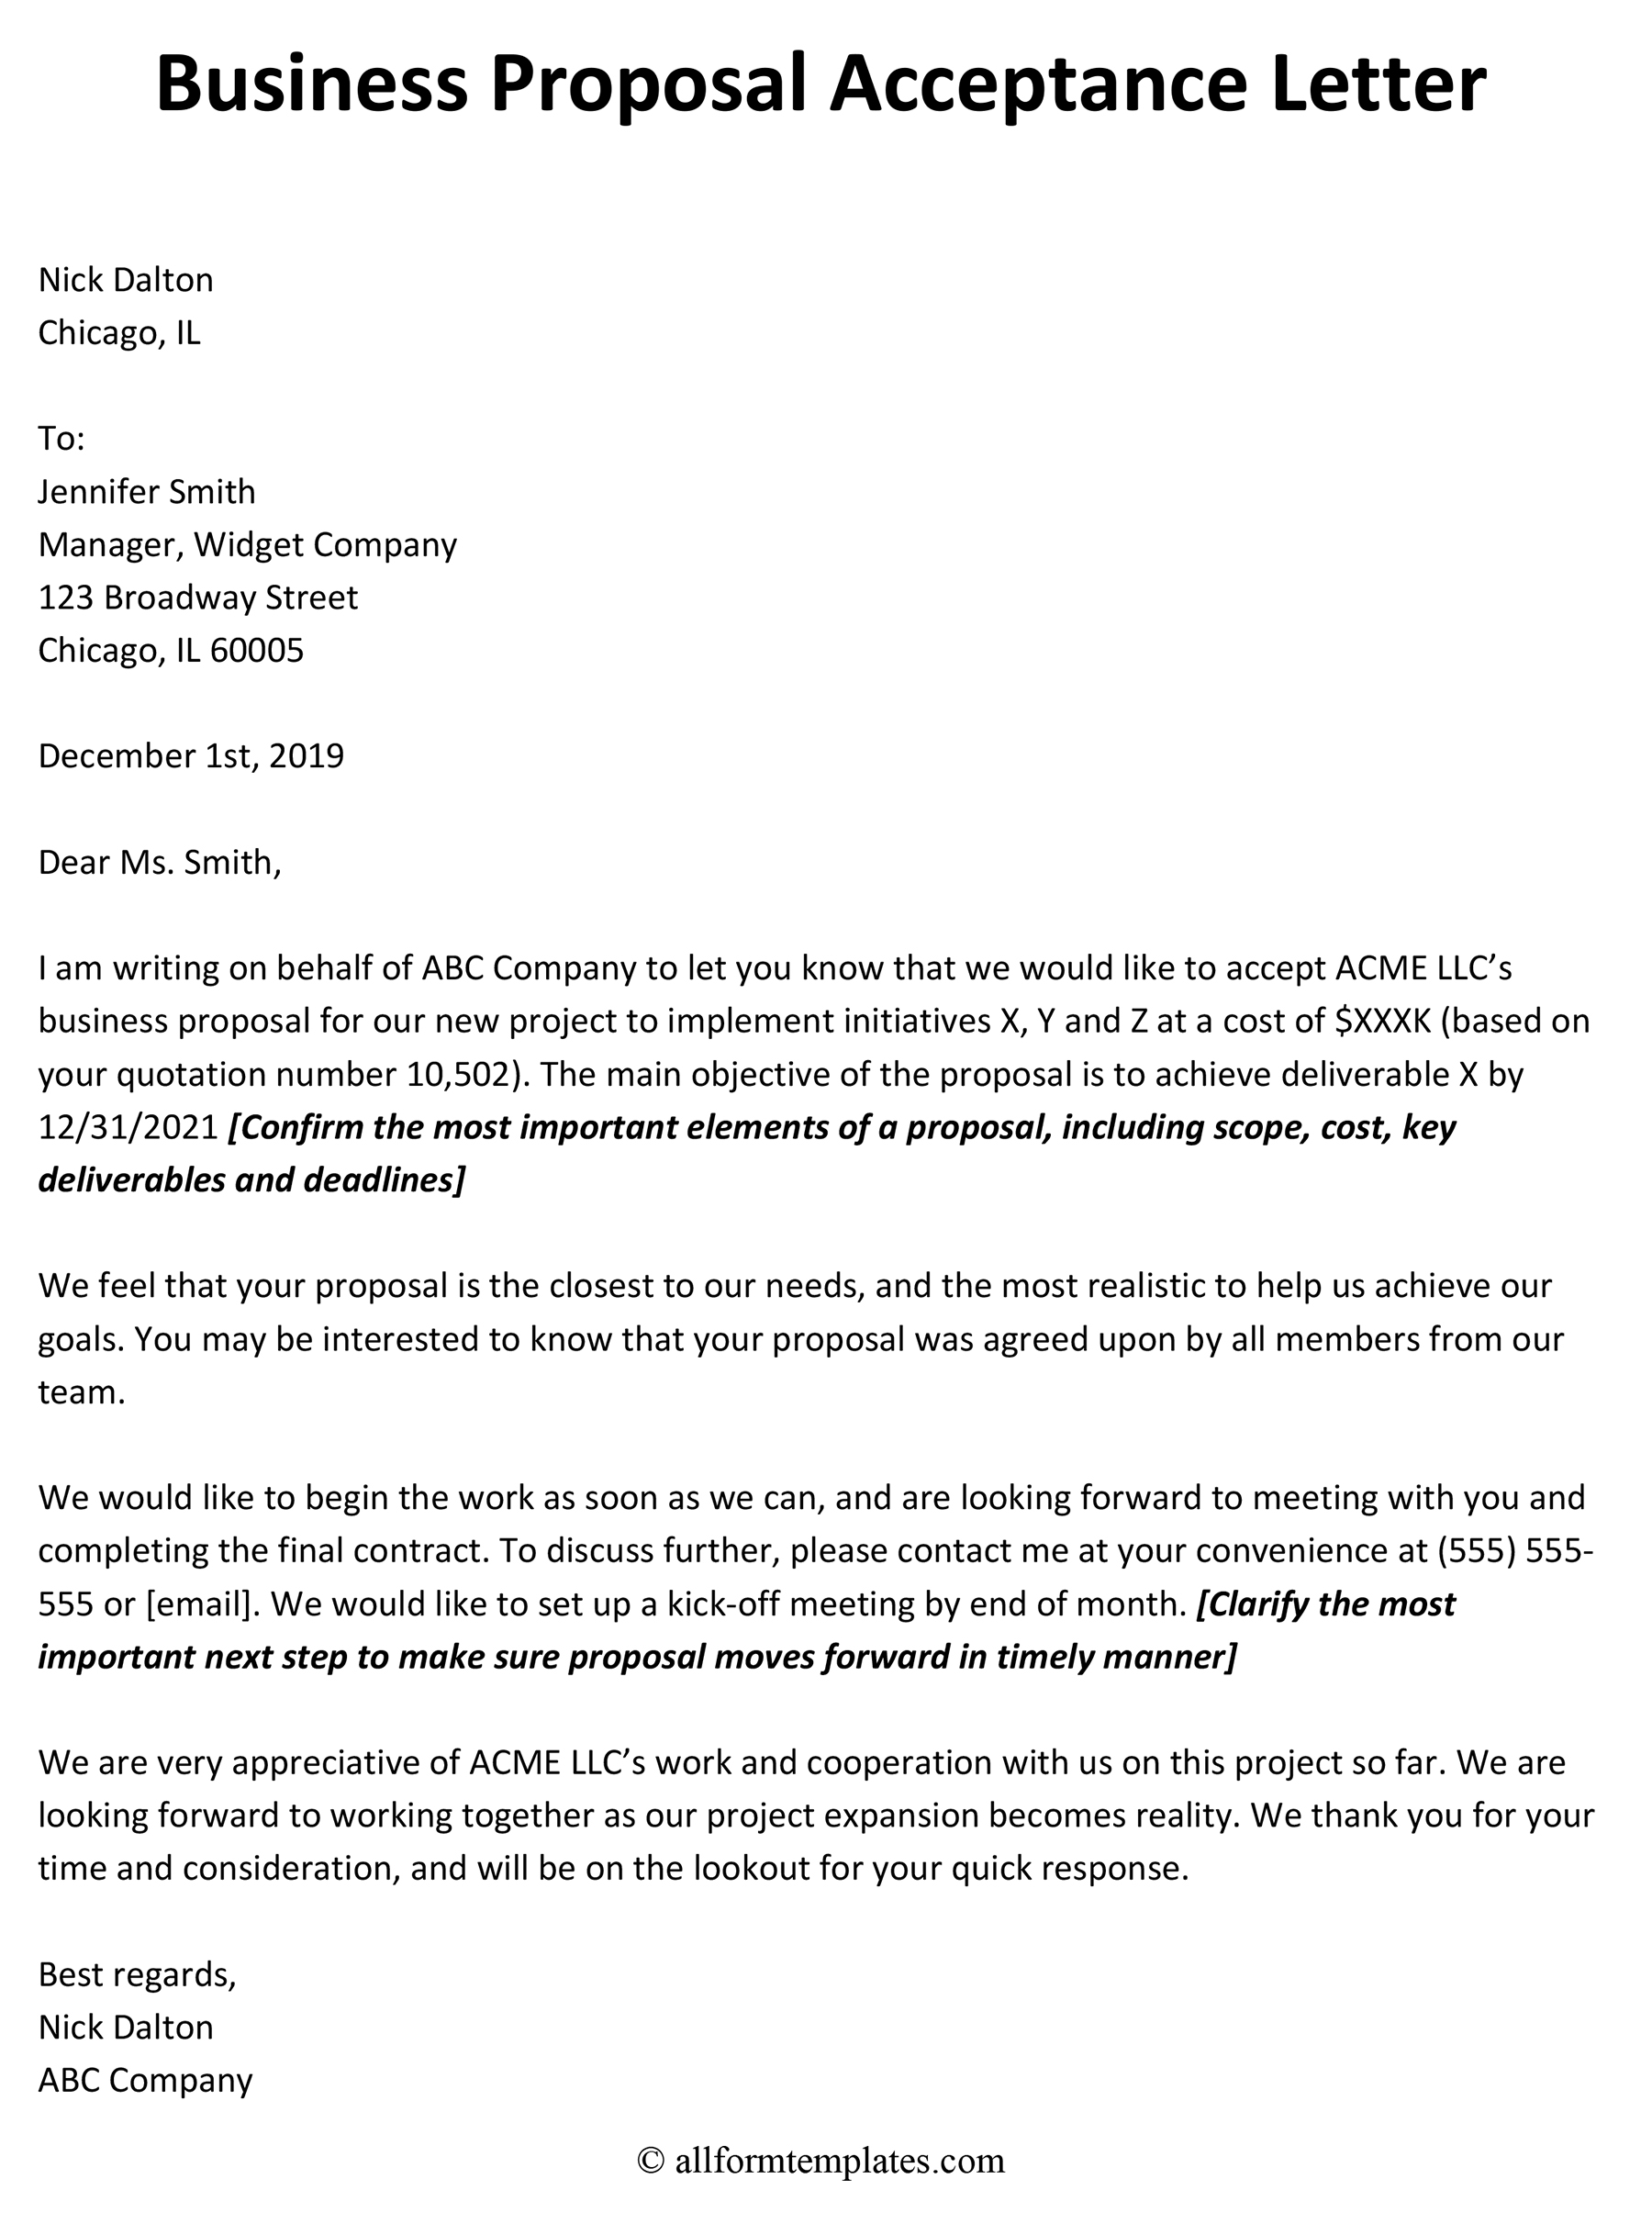 Business-Proposal-Letter-01-HD